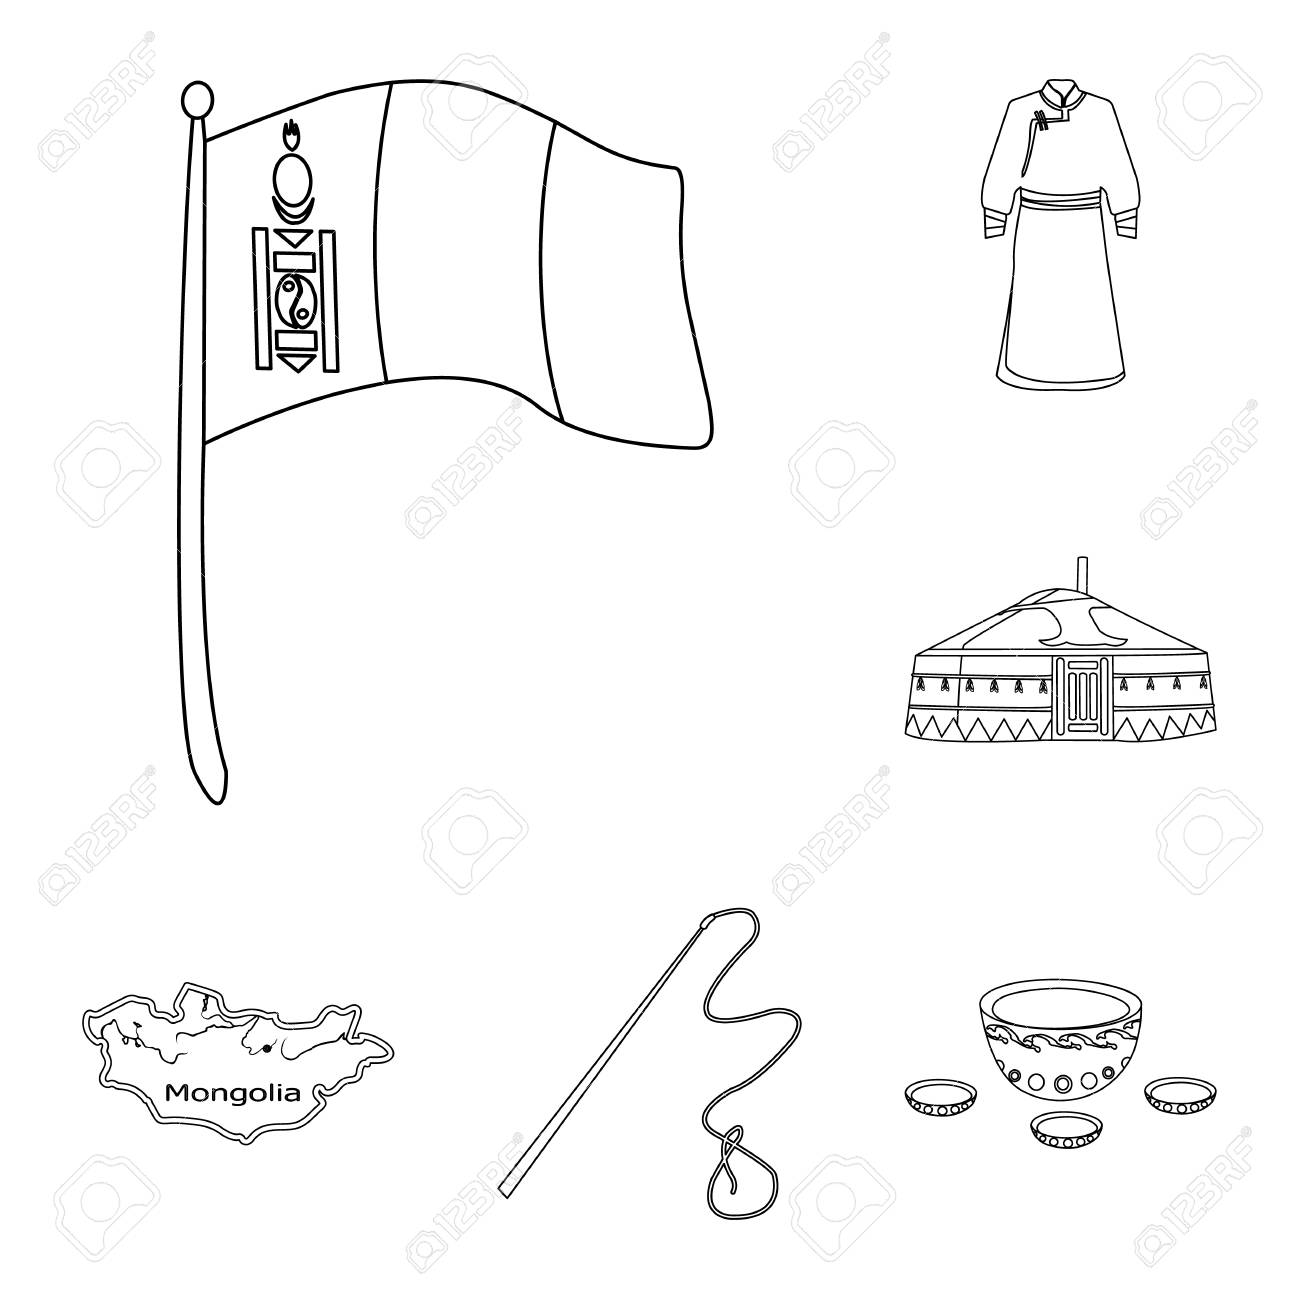 country mongolia outline icons in set collection for design Mongolia Art country mongolia outline icons in set collection for design territory and landmark vector symbol stock